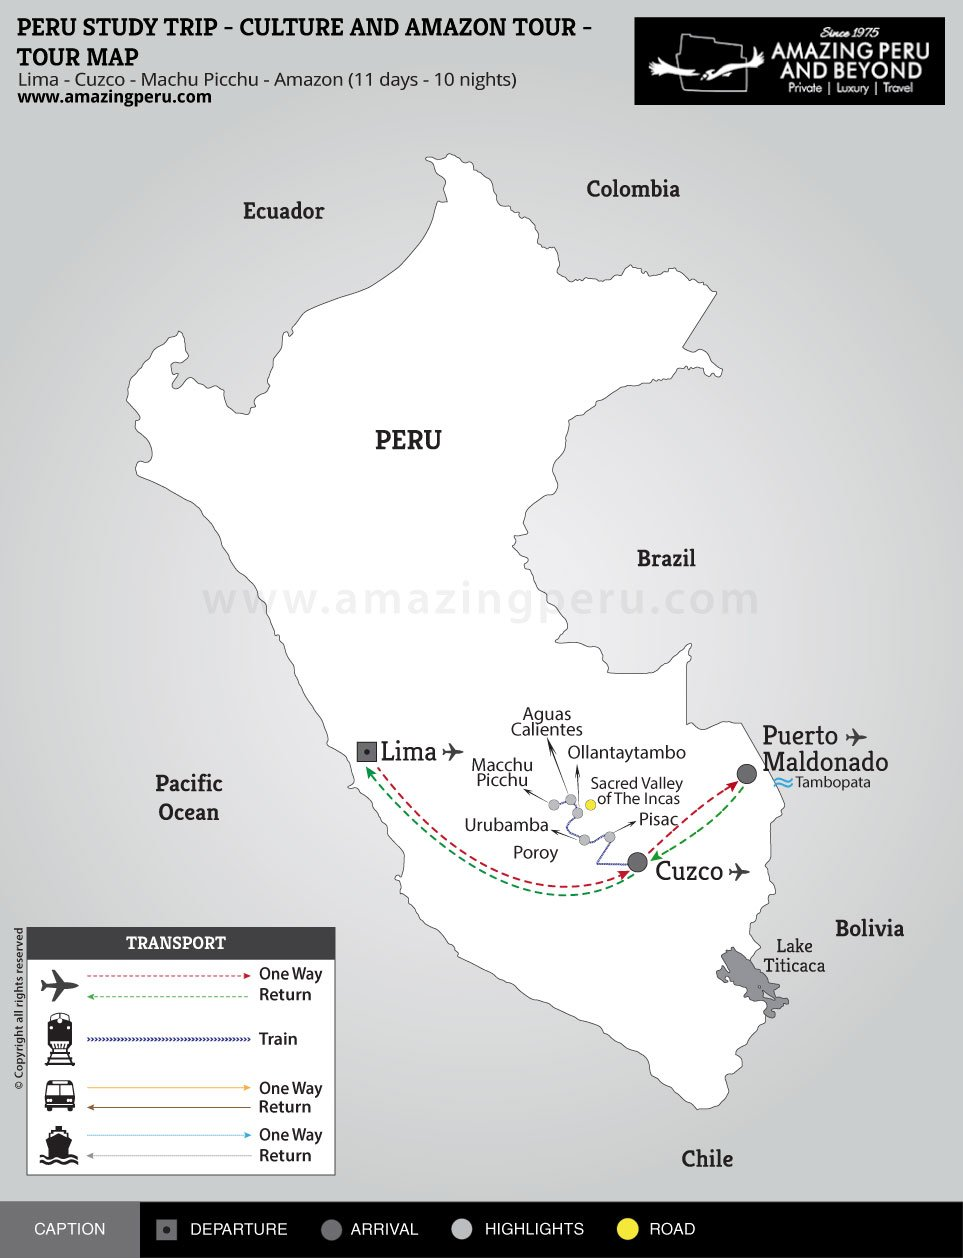 Peru Study Trip - Culture and Amazon Tour - 11 days / 10 nights.